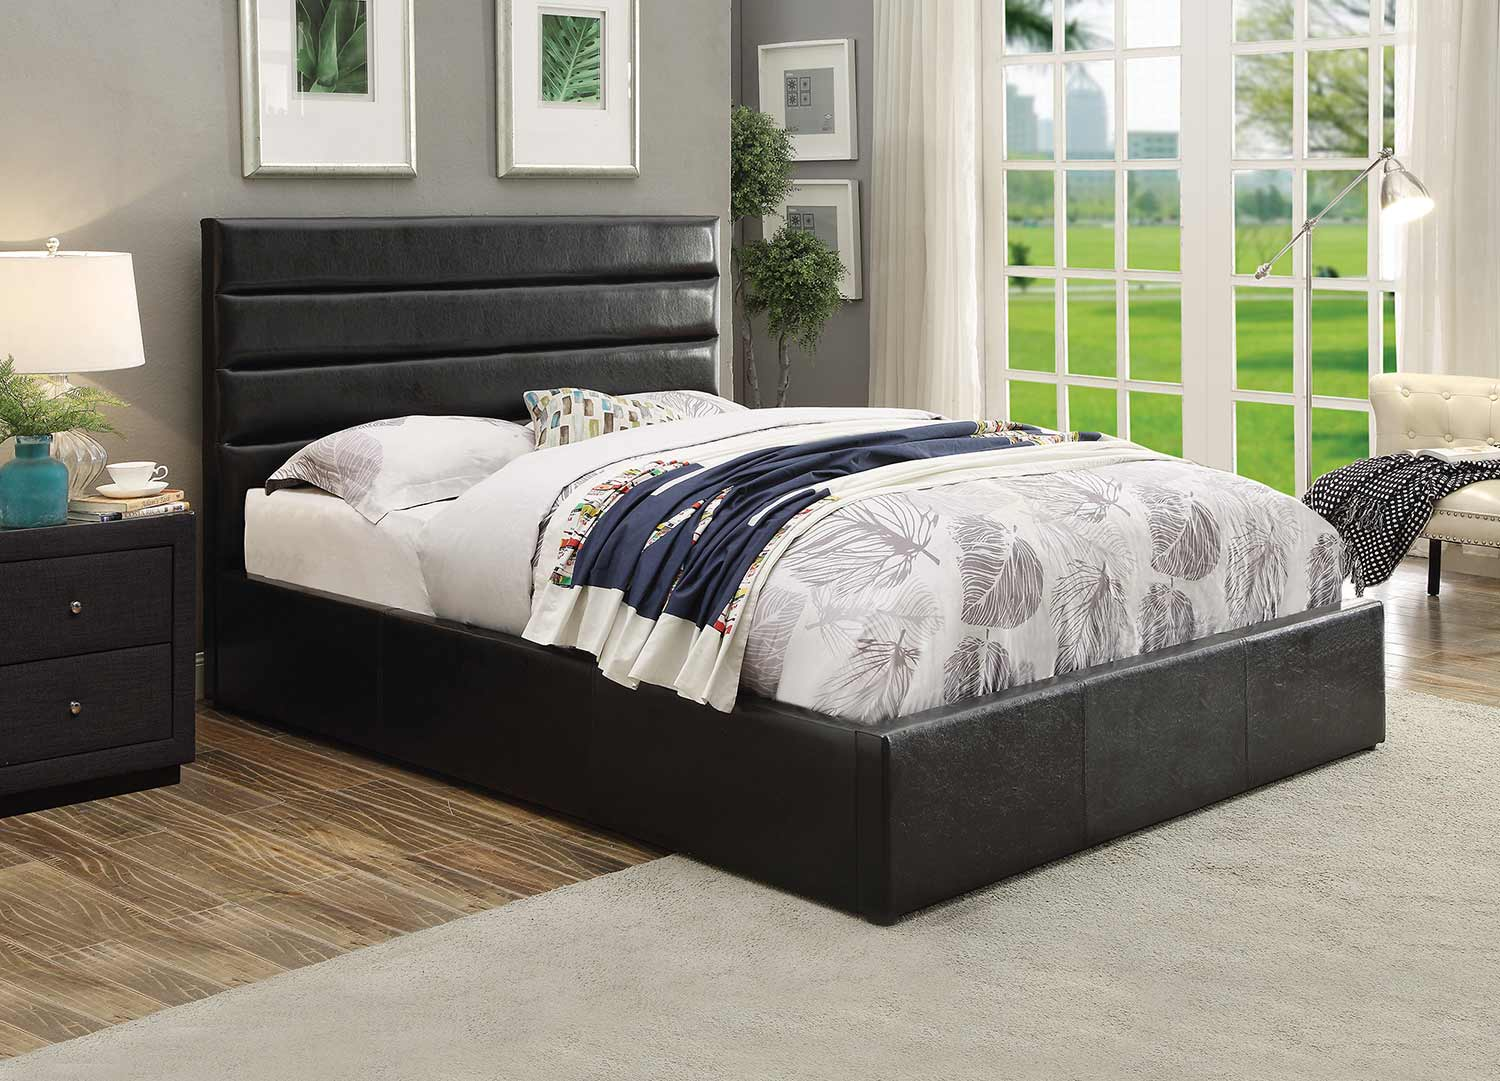 Coaster Riverbend Bed - Black Leatherette